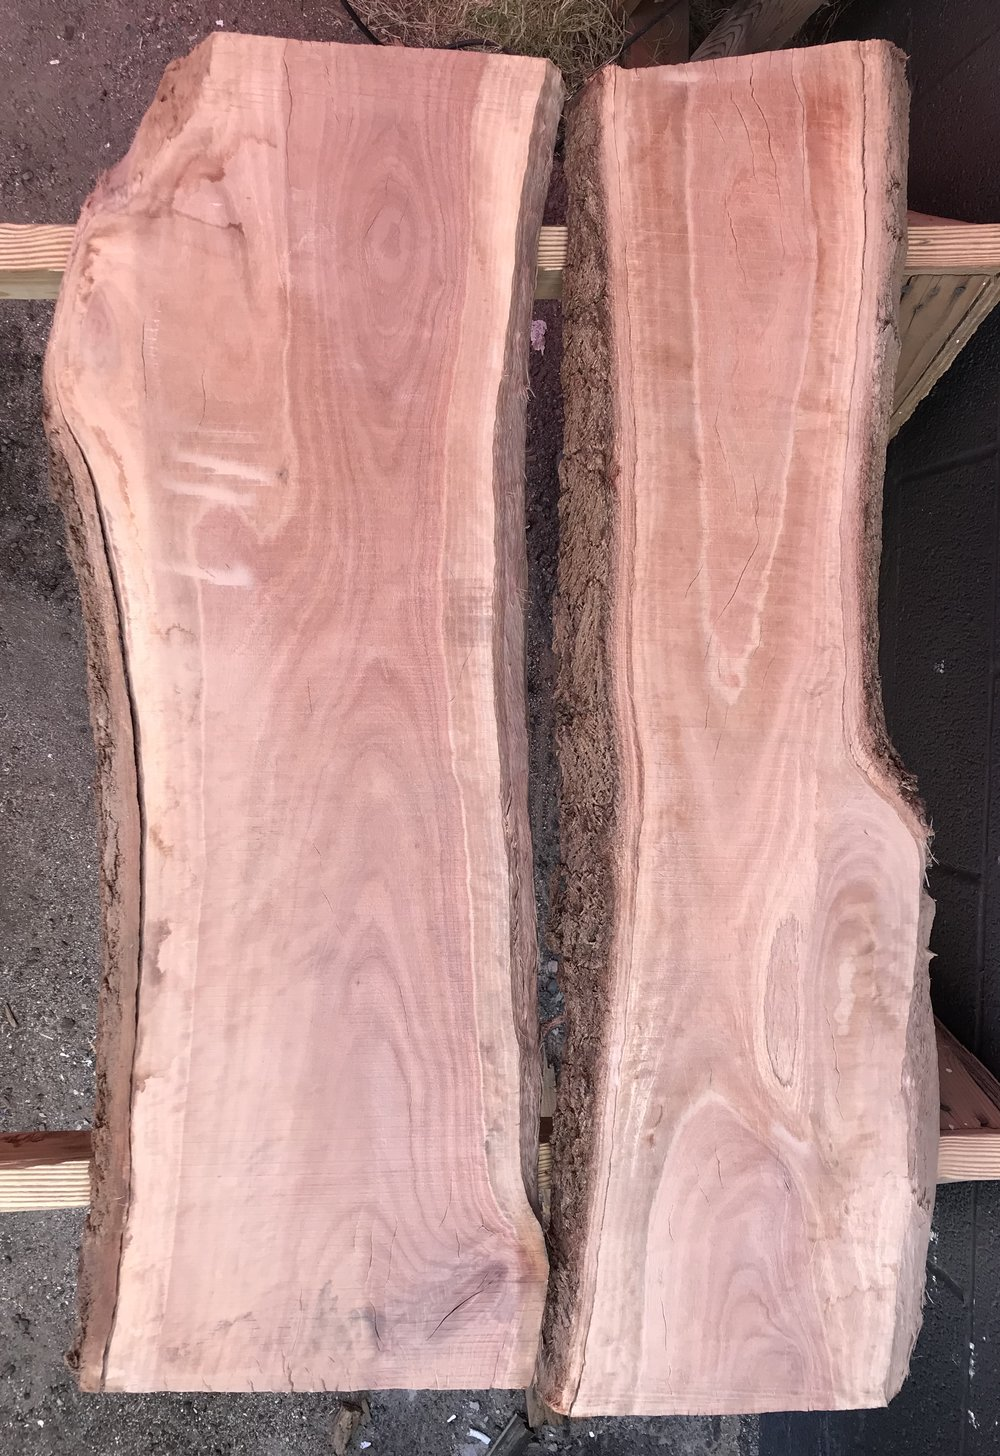 Mini eucalyptus slab with beautiful grain